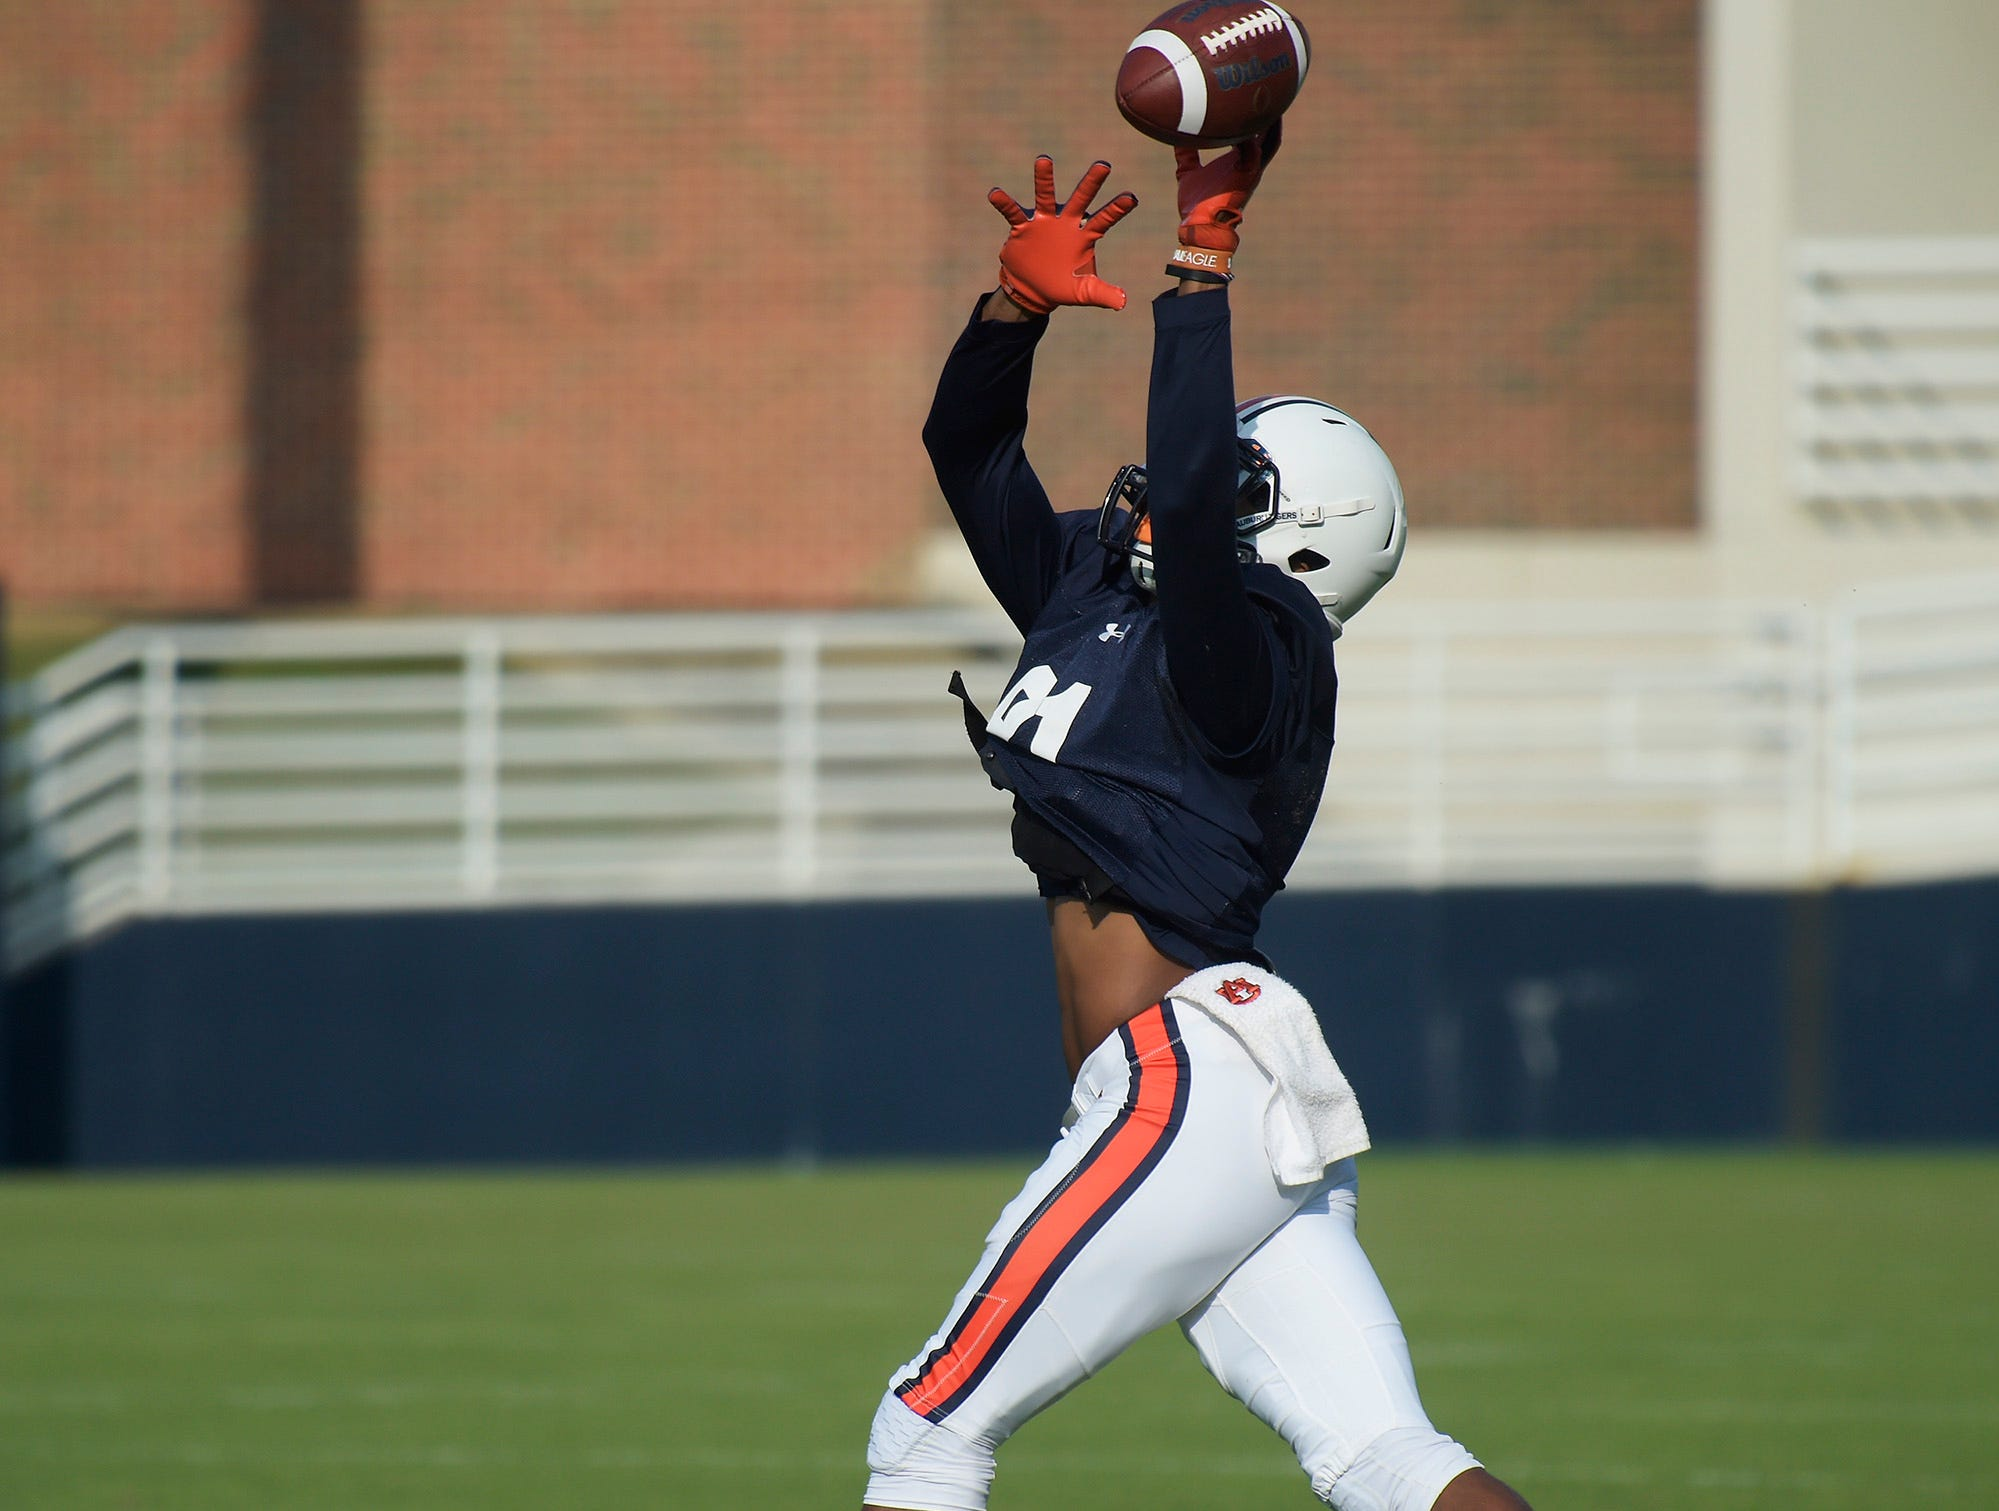 Auburn wide receiver Darius Slayton goes up to make a catch in practice on Wednesday, Aug. 22, 2018 in Auburn, Ala.